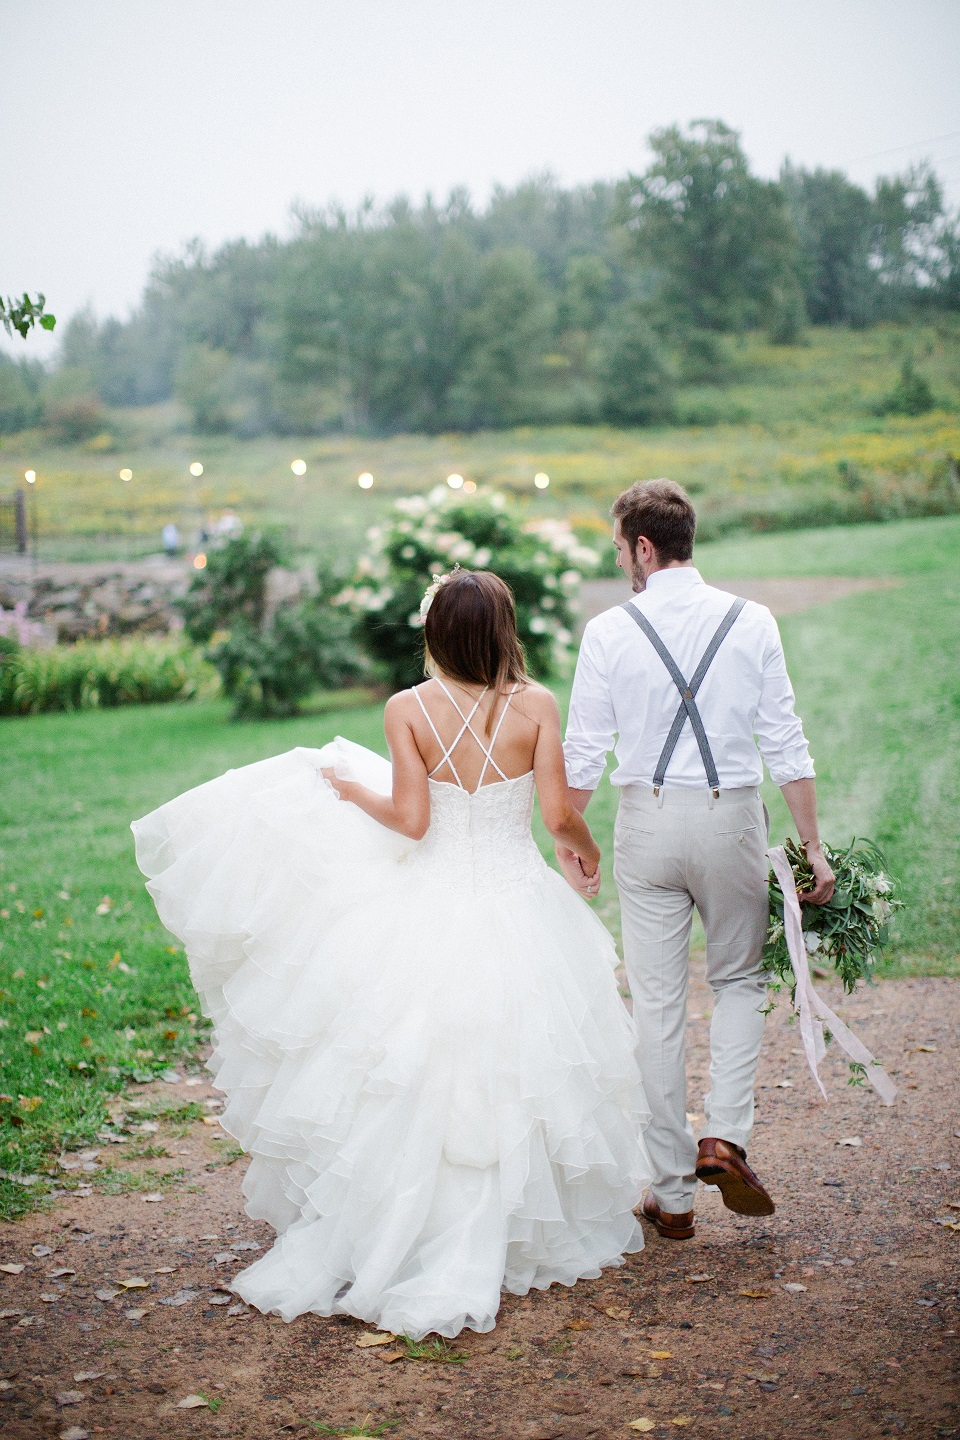 Bride and Groom walking off into the distance